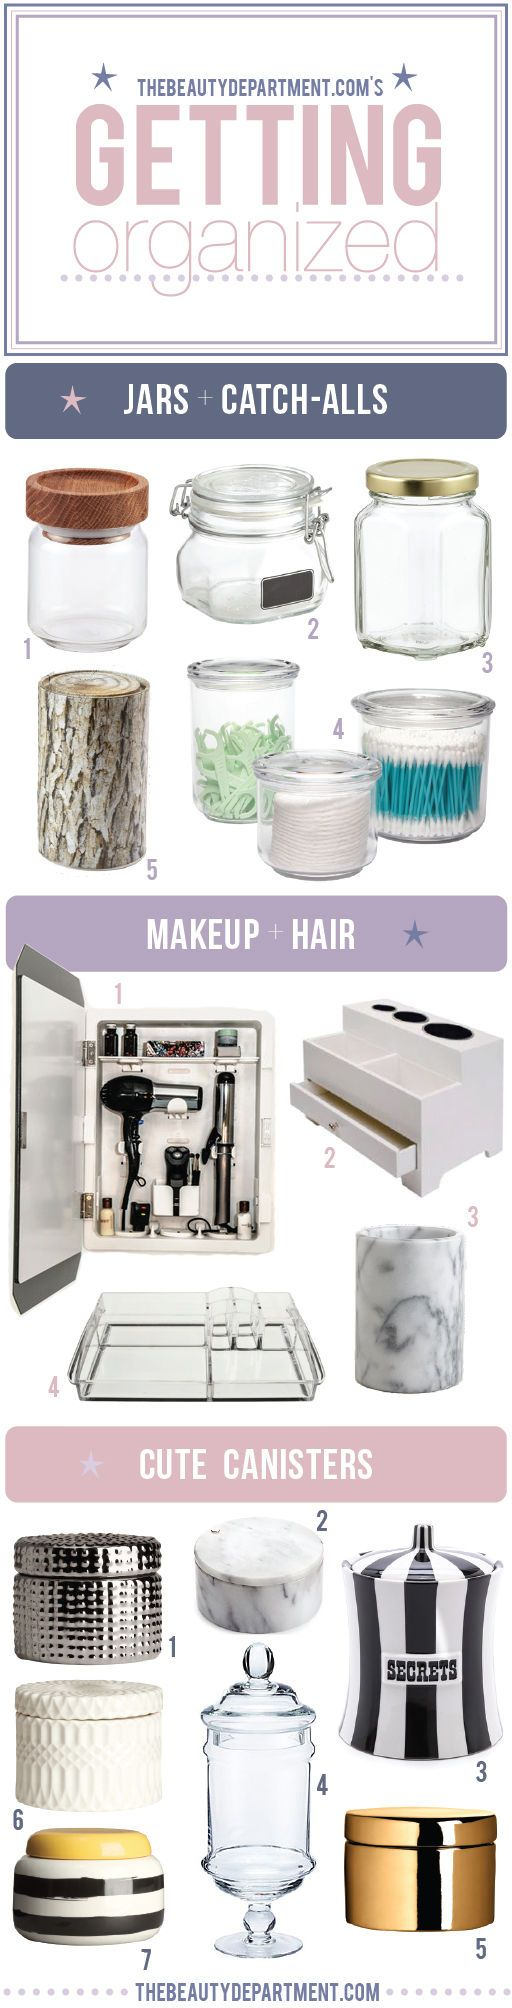 The Beauty Department: Your Daily Dose of Pretty. - ORGANIZATION STATION! @tbdofficial